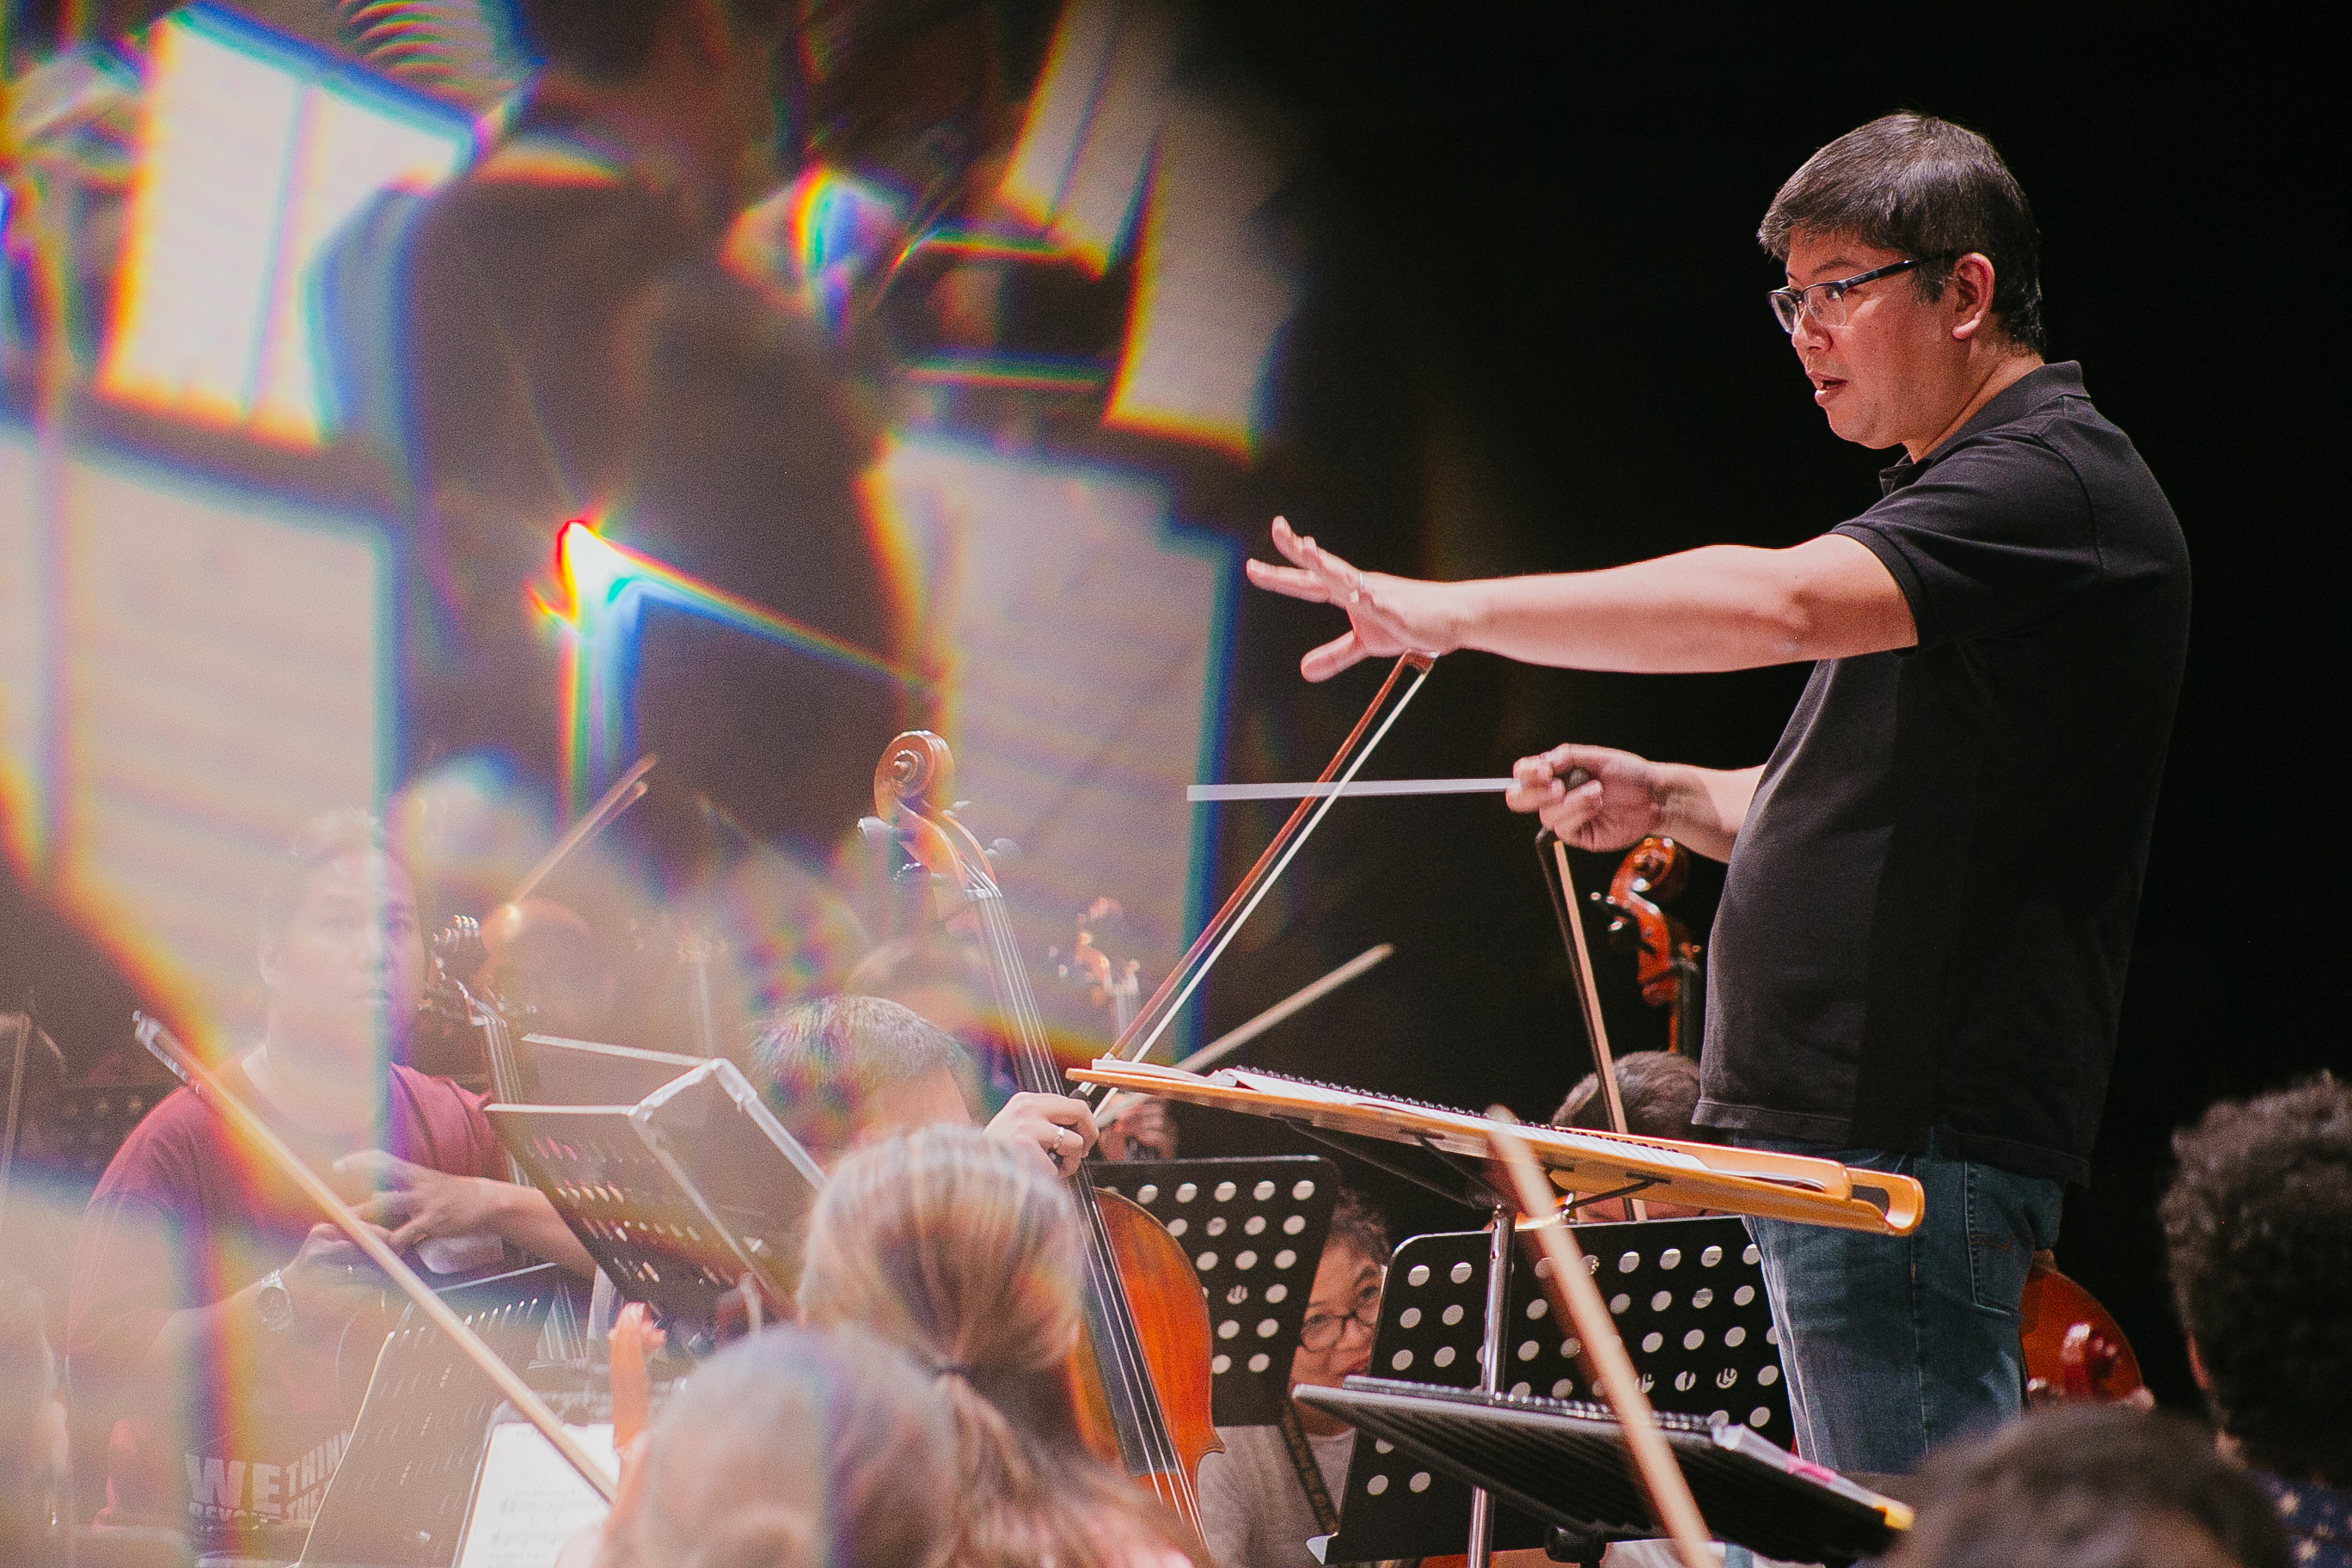 PRACTICE. Gerard Salonga leads the ABS-CBN Philharmonic Orchestra during rehearsals. Photo by Paolo Abad/Rappler